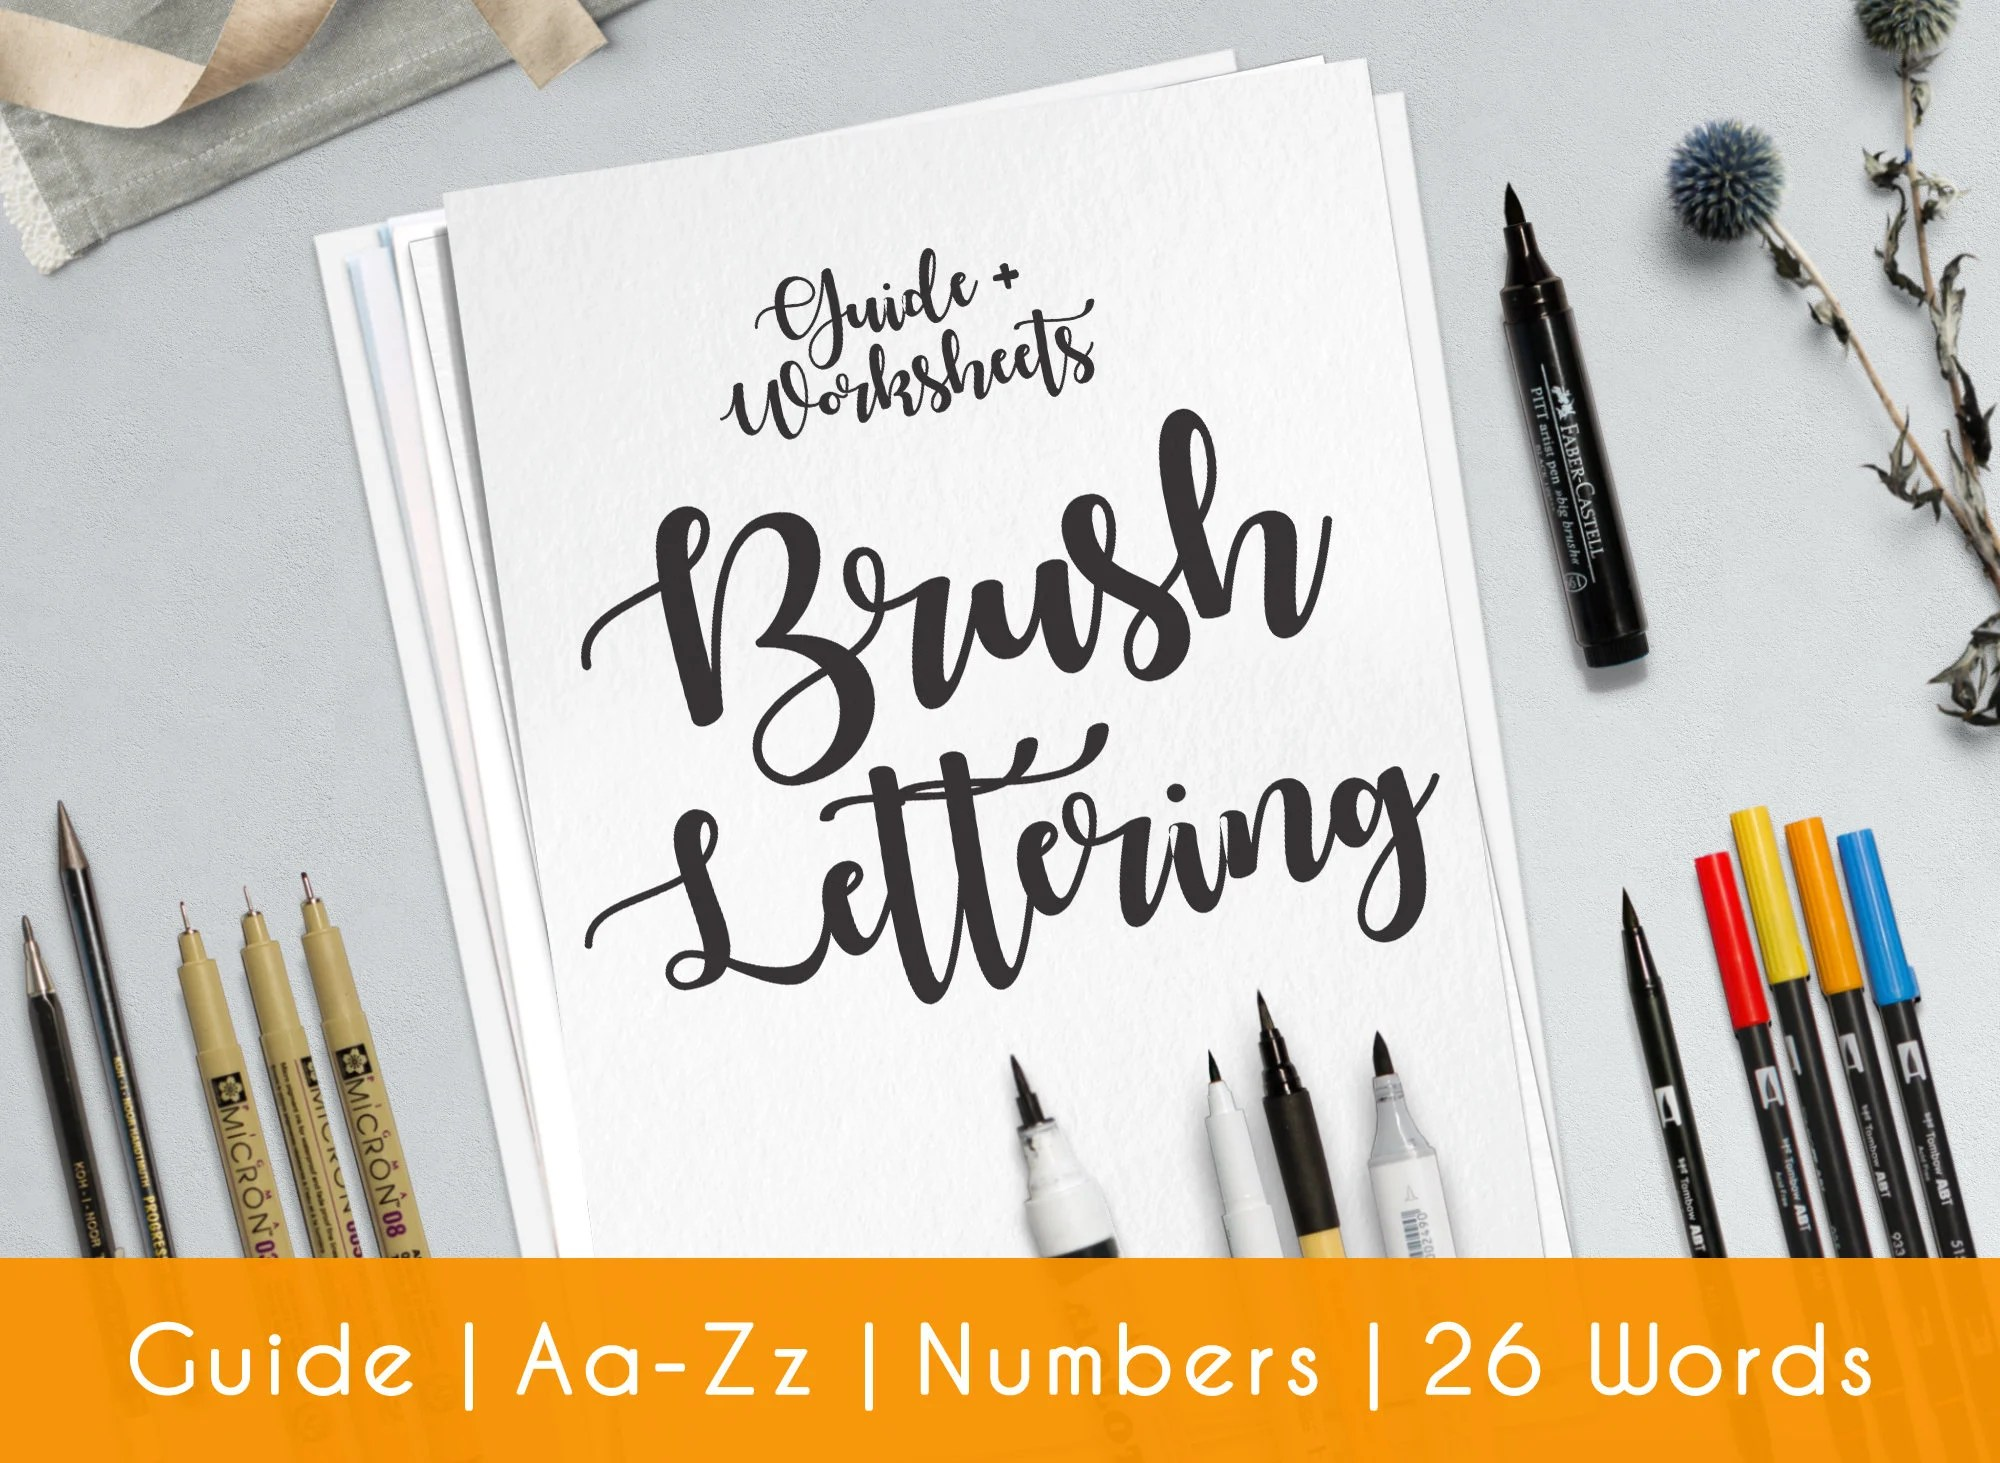 Brush Hand Lettering Worksheets 33 Practice Sheets Guide